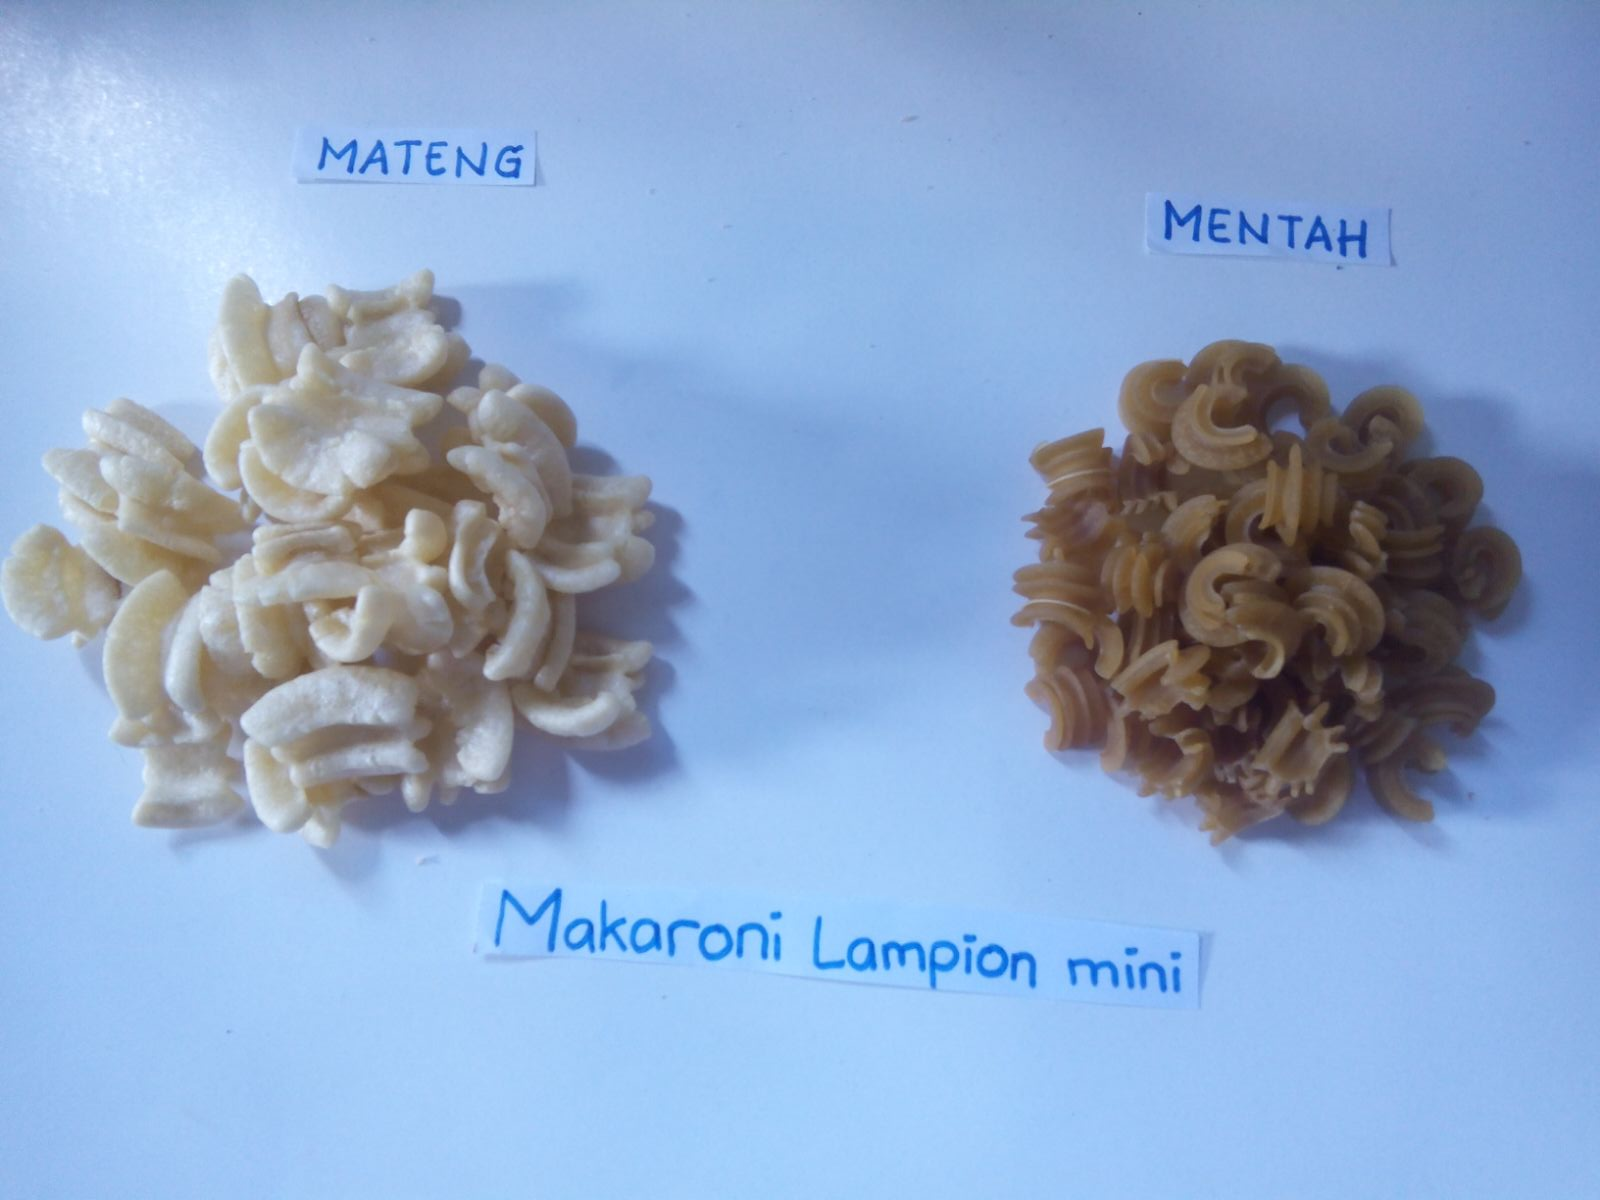 Makaroni Lampion Mini